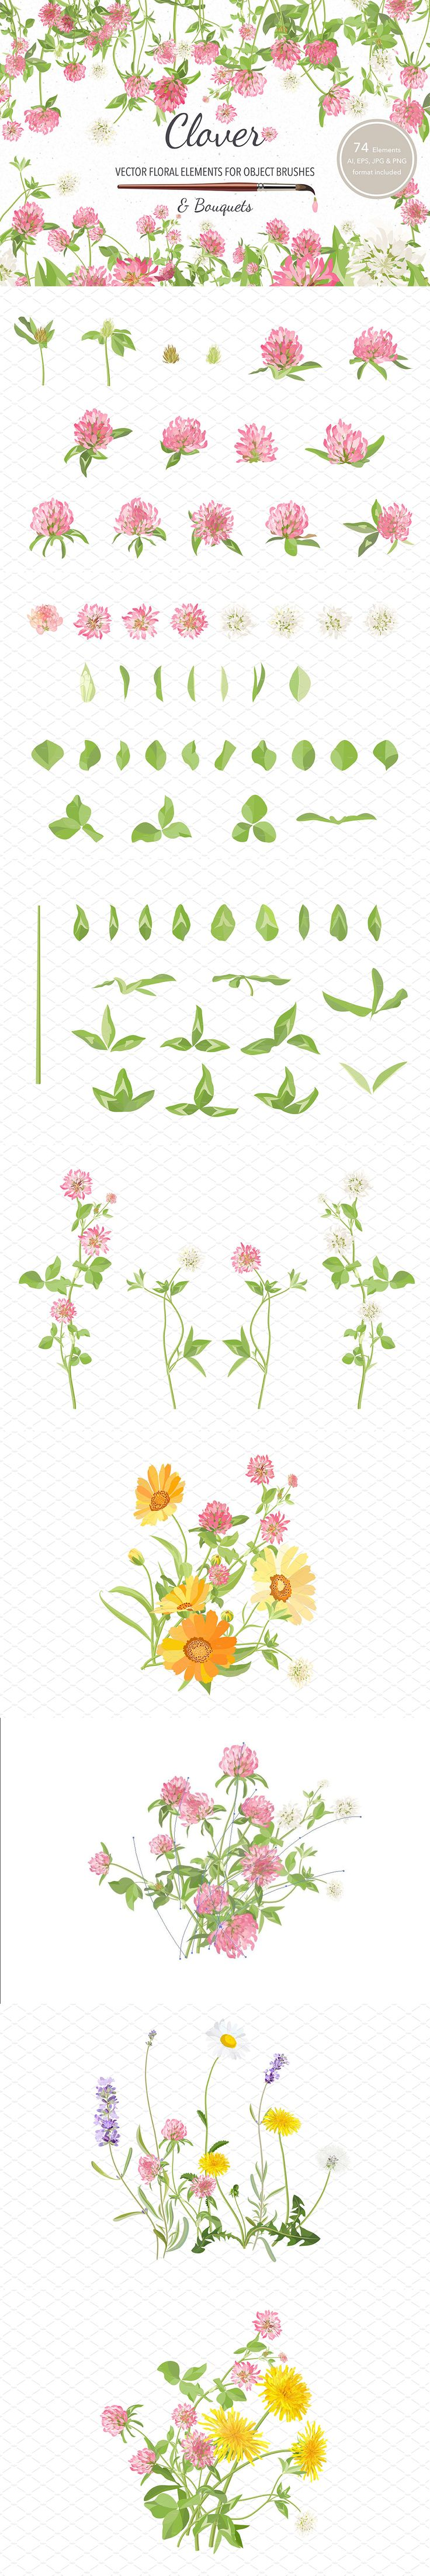 #FREE : #Vector #floral elements with object brushes. 74 flower vector elements (stems, leaves and flowers), plus 5 #illustrations with #bouquet of Clover. ( #scrapbooking #freebies #art #watercolor )